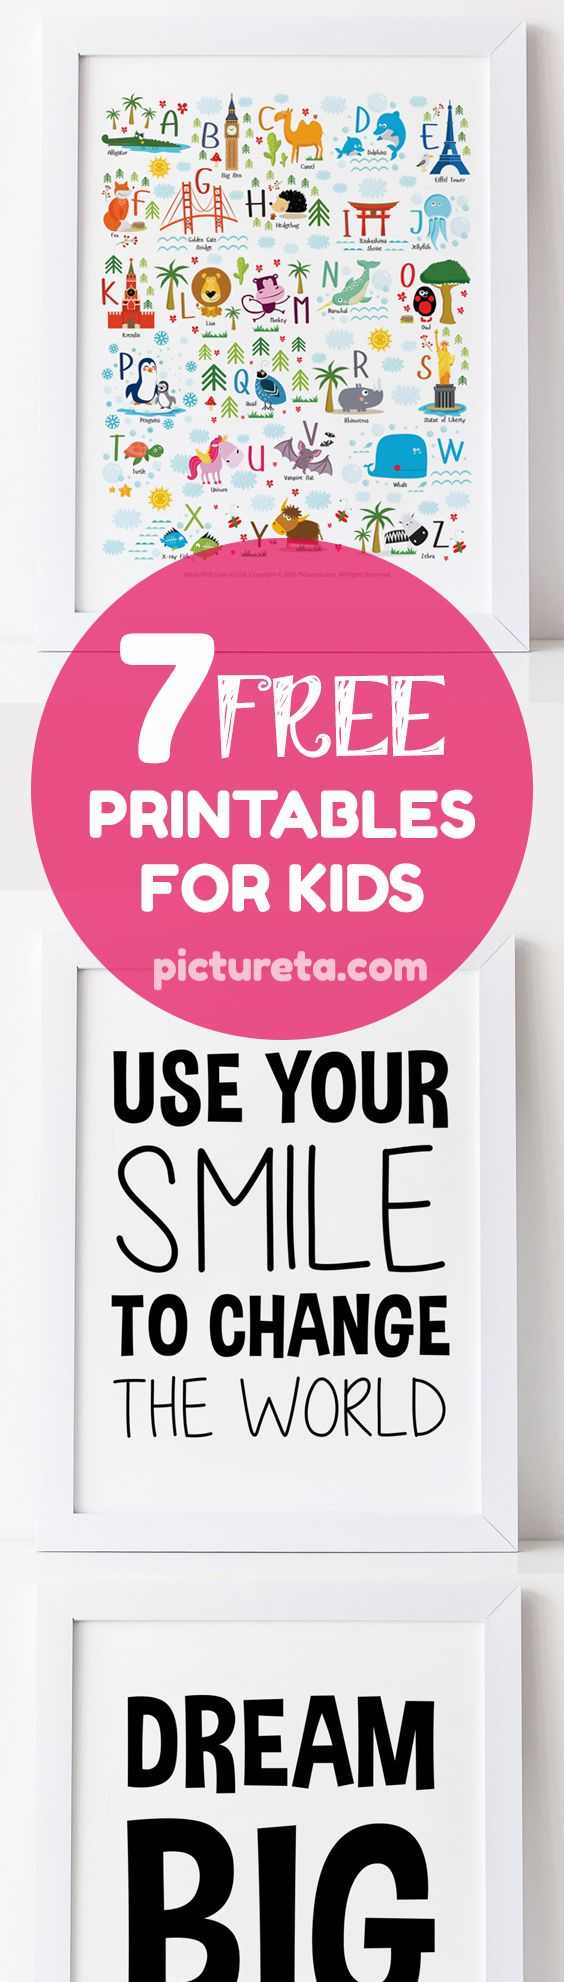 Free Printables for Kids. Free Nursery Printables. Inspirational Quotes for Kids. Get modern and inspirational free printables for kids by Pictureta. Inspirational quotes for kids. Unique nursery décor, alphabet poster, English alphabet, free nursery art printables, free playroom printables, quotes for kids, dream big little one